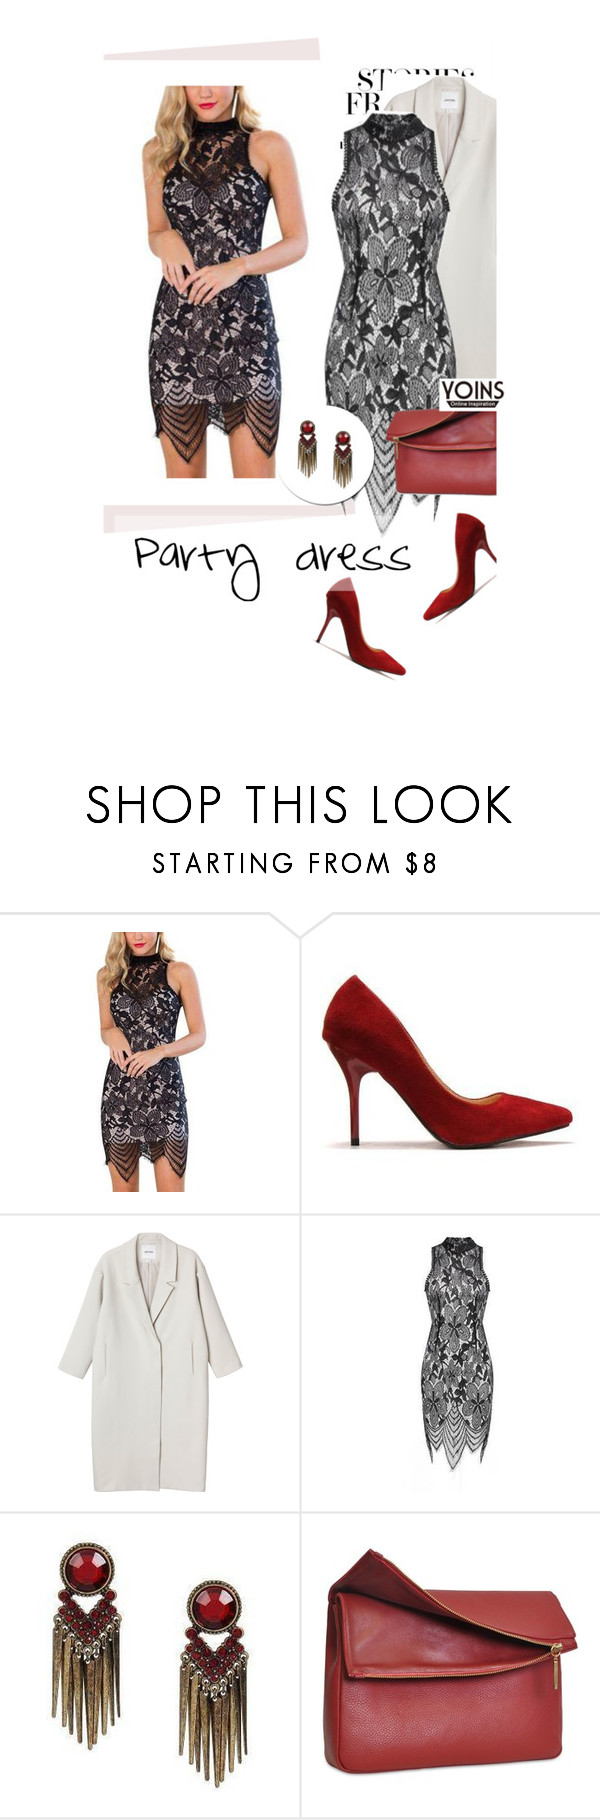 """""""Party dress"""" by merima-kopic ❤ liked on Polyvore featuring Monki, Eddie and yoins"""